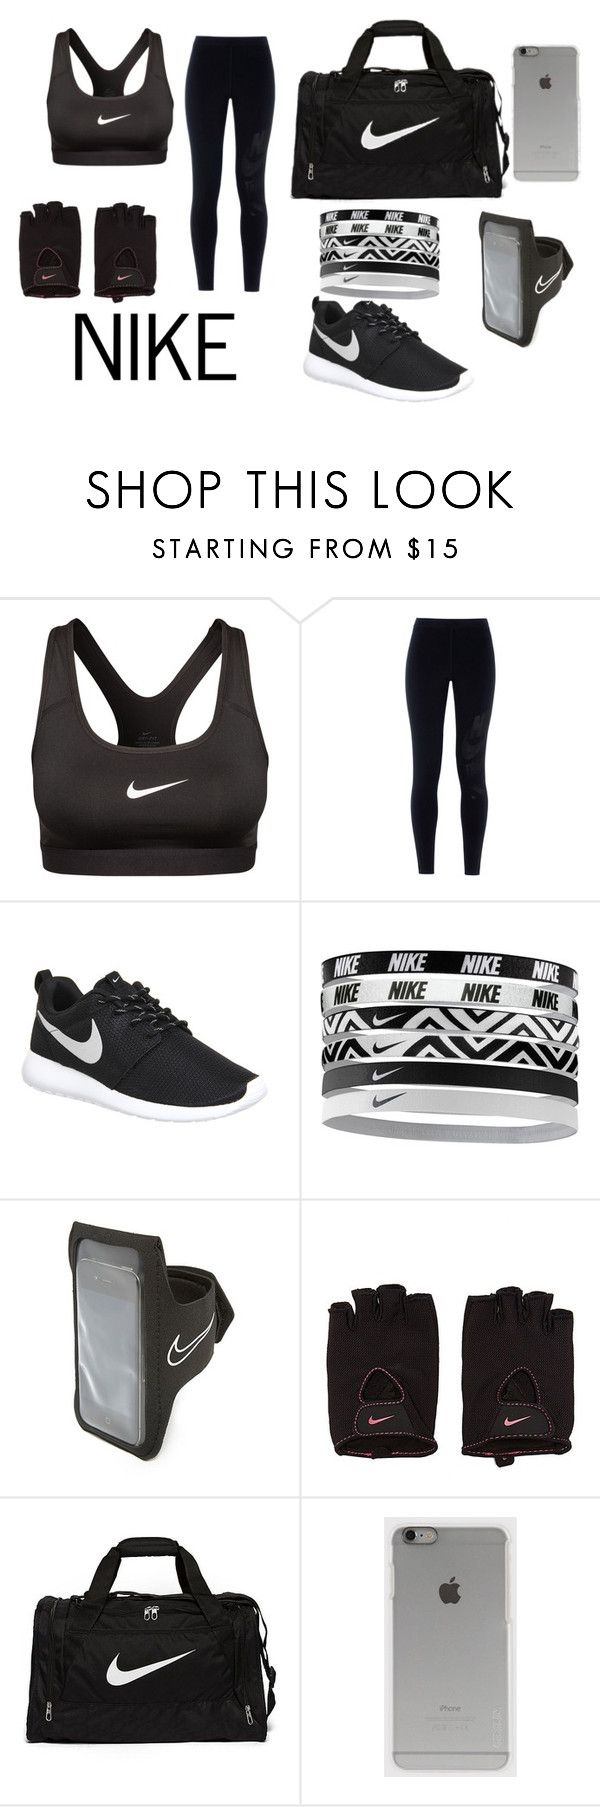 """NIKE"" by abi-tong on Polyvore featuring NIKE, Incase, women's clothing, women's fashion, women, female, woman, misses and juniors"